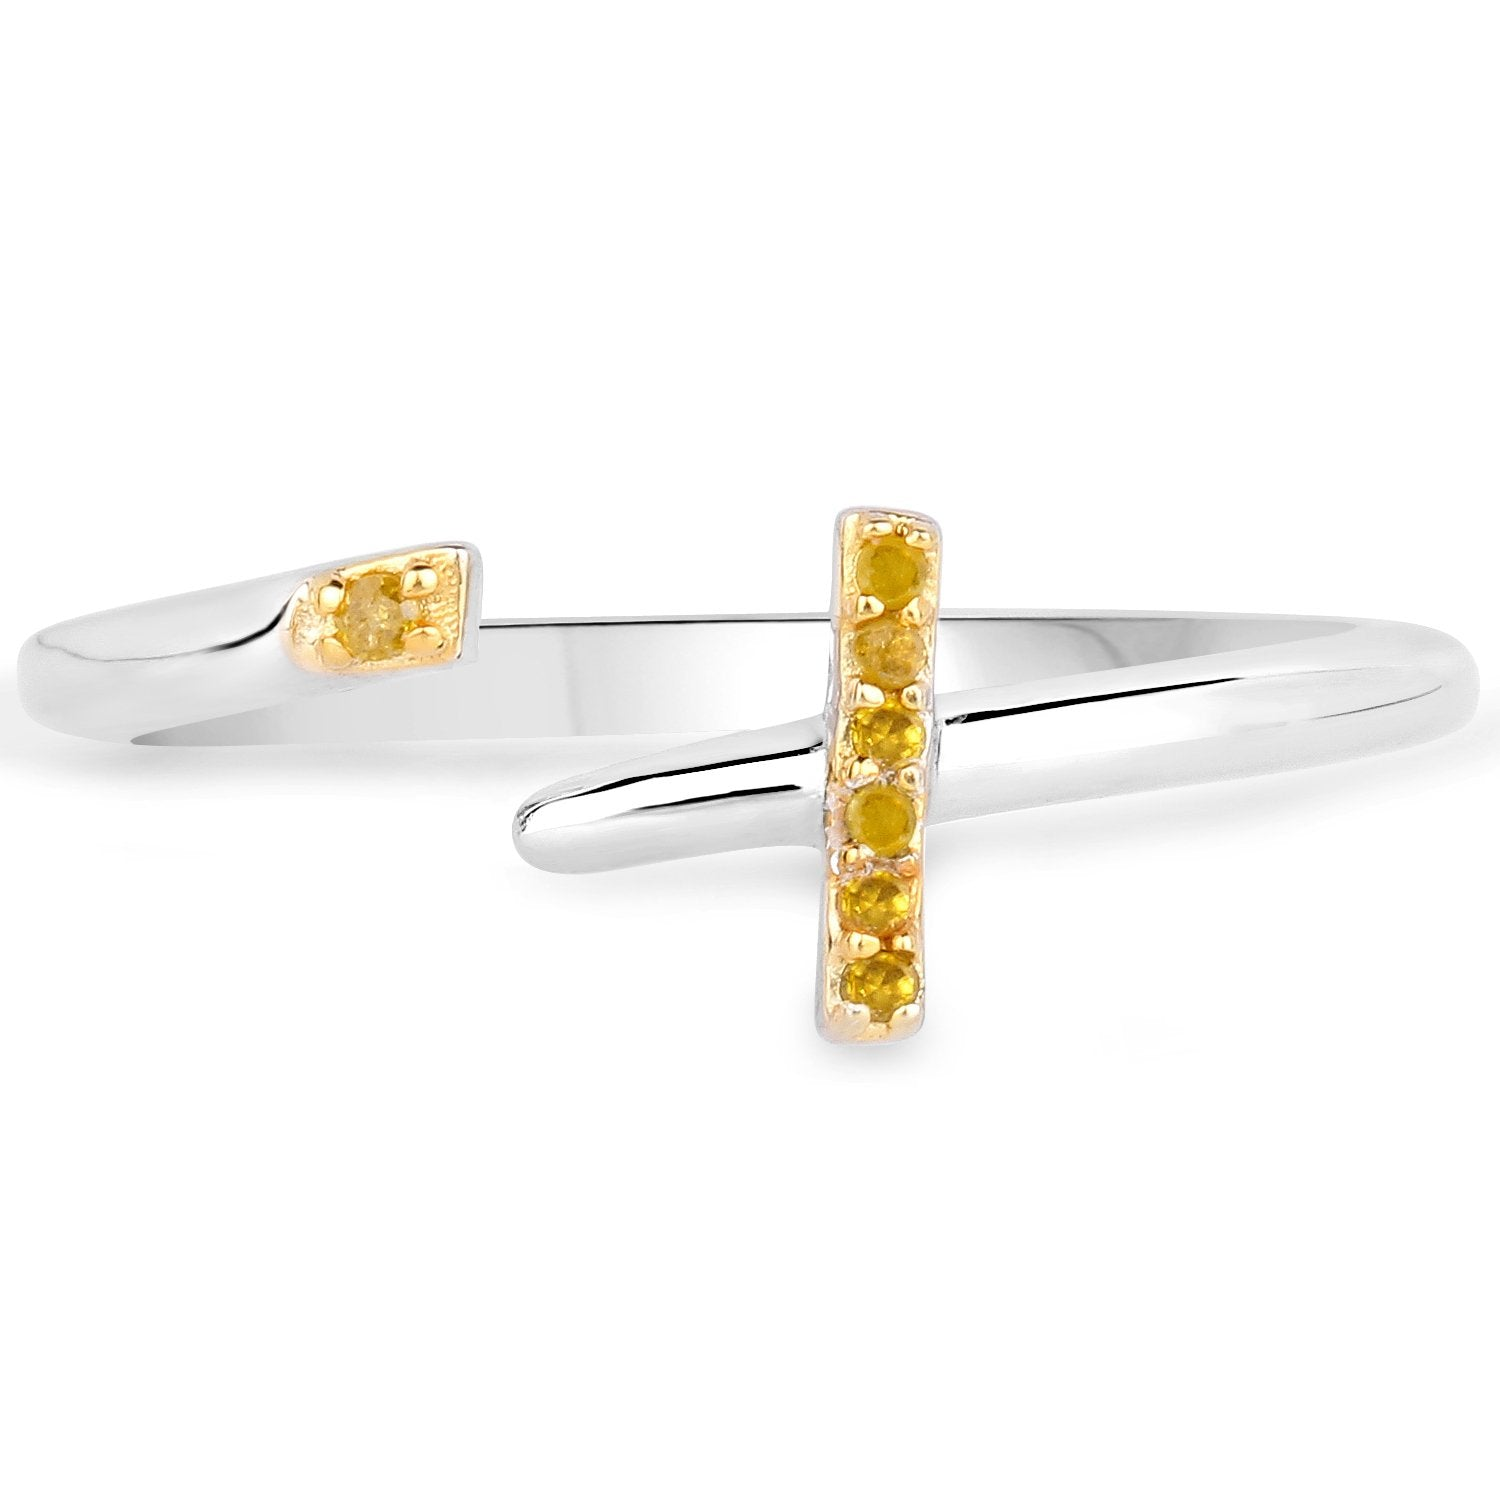 LoveHuang 0.04 Carats Genuine Yellow Diamond (I-J, I2-I3) Cross Ring Solid .925 Sterling Silver With Rhodium Plating